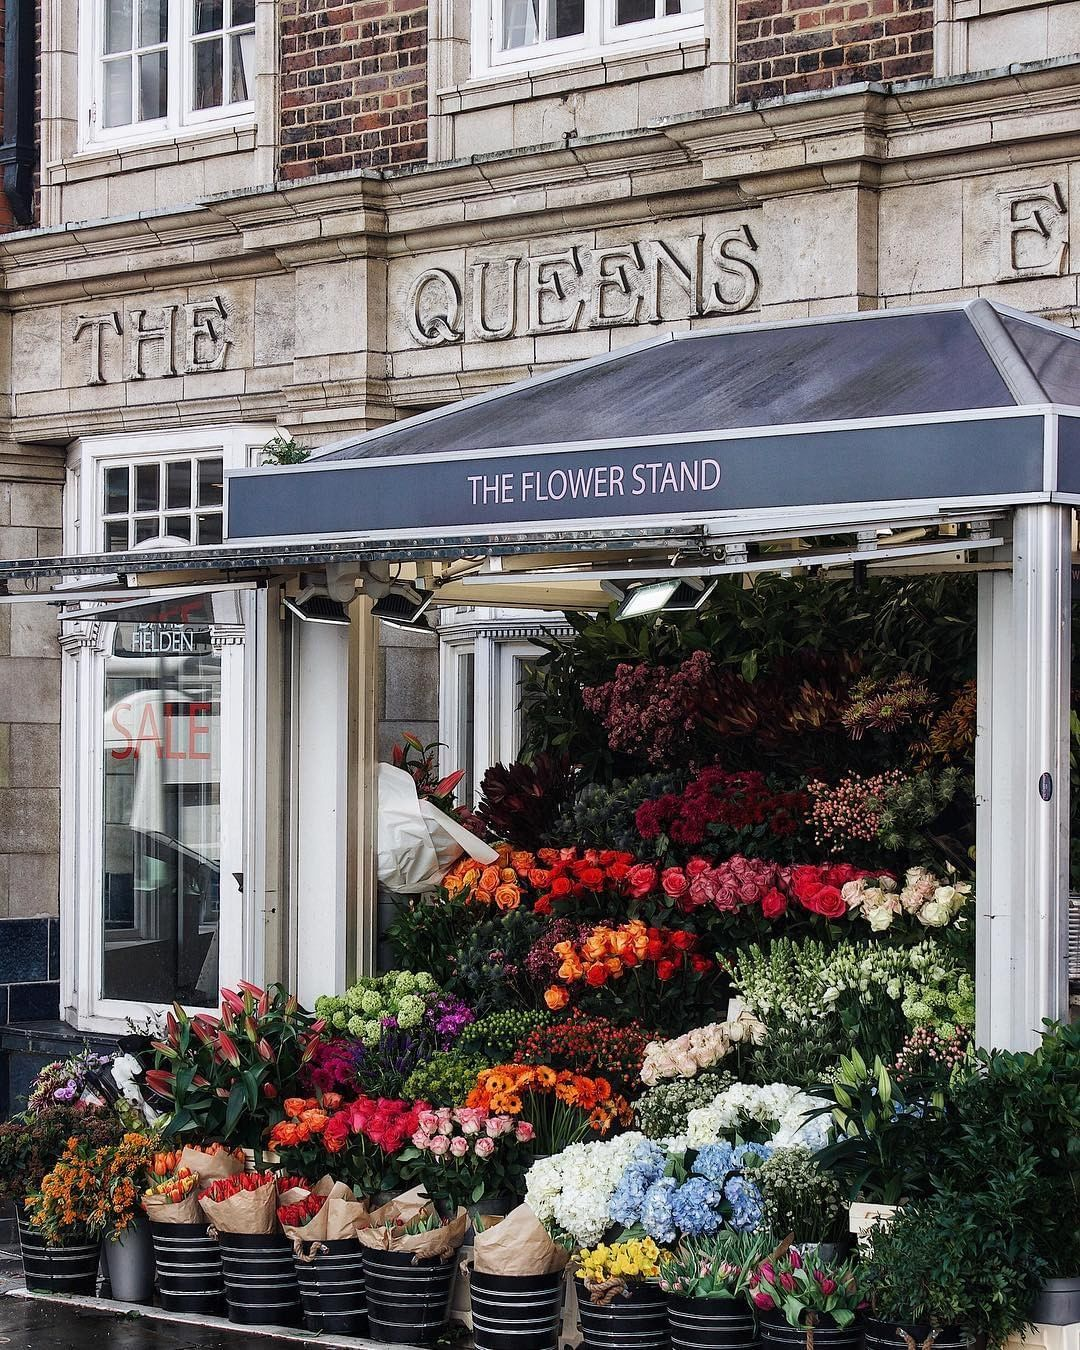 The Flower Shopkeepers On Instagram The Flower Stand Chelsea London Myspaige A Rainbow Of Organized Flowers Wh In 2020 Flower Stands Purple Plants Flower Shop